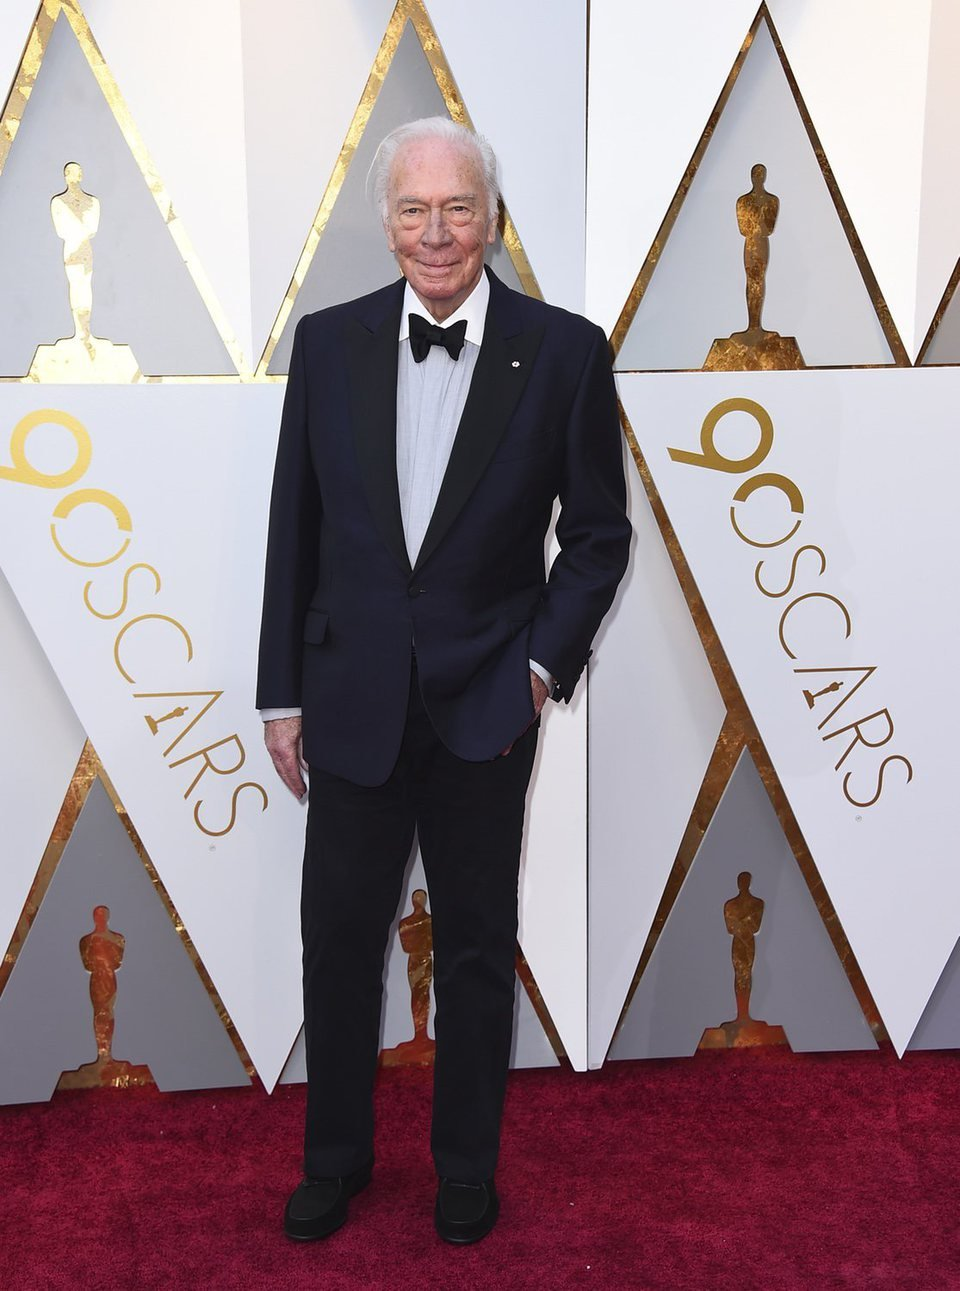 Christopher Plummer at the red carpet of the Oscars 2018